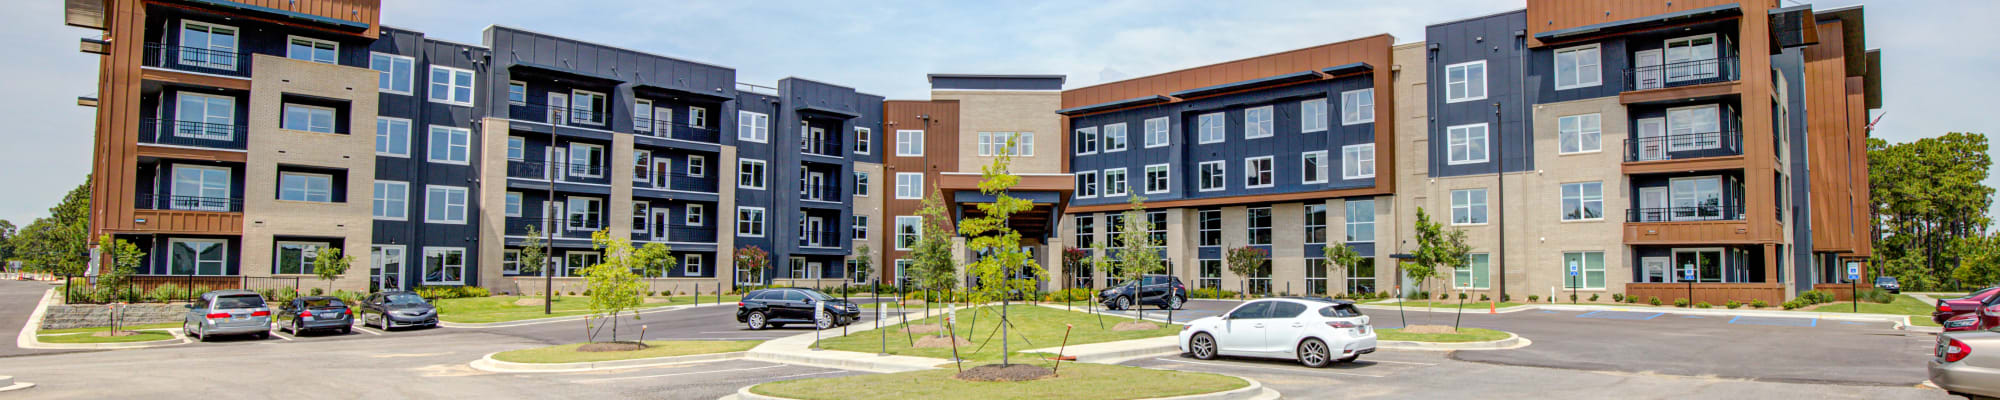 3-year rent lock at Discovery Village At Sandhill in Columbia, SC